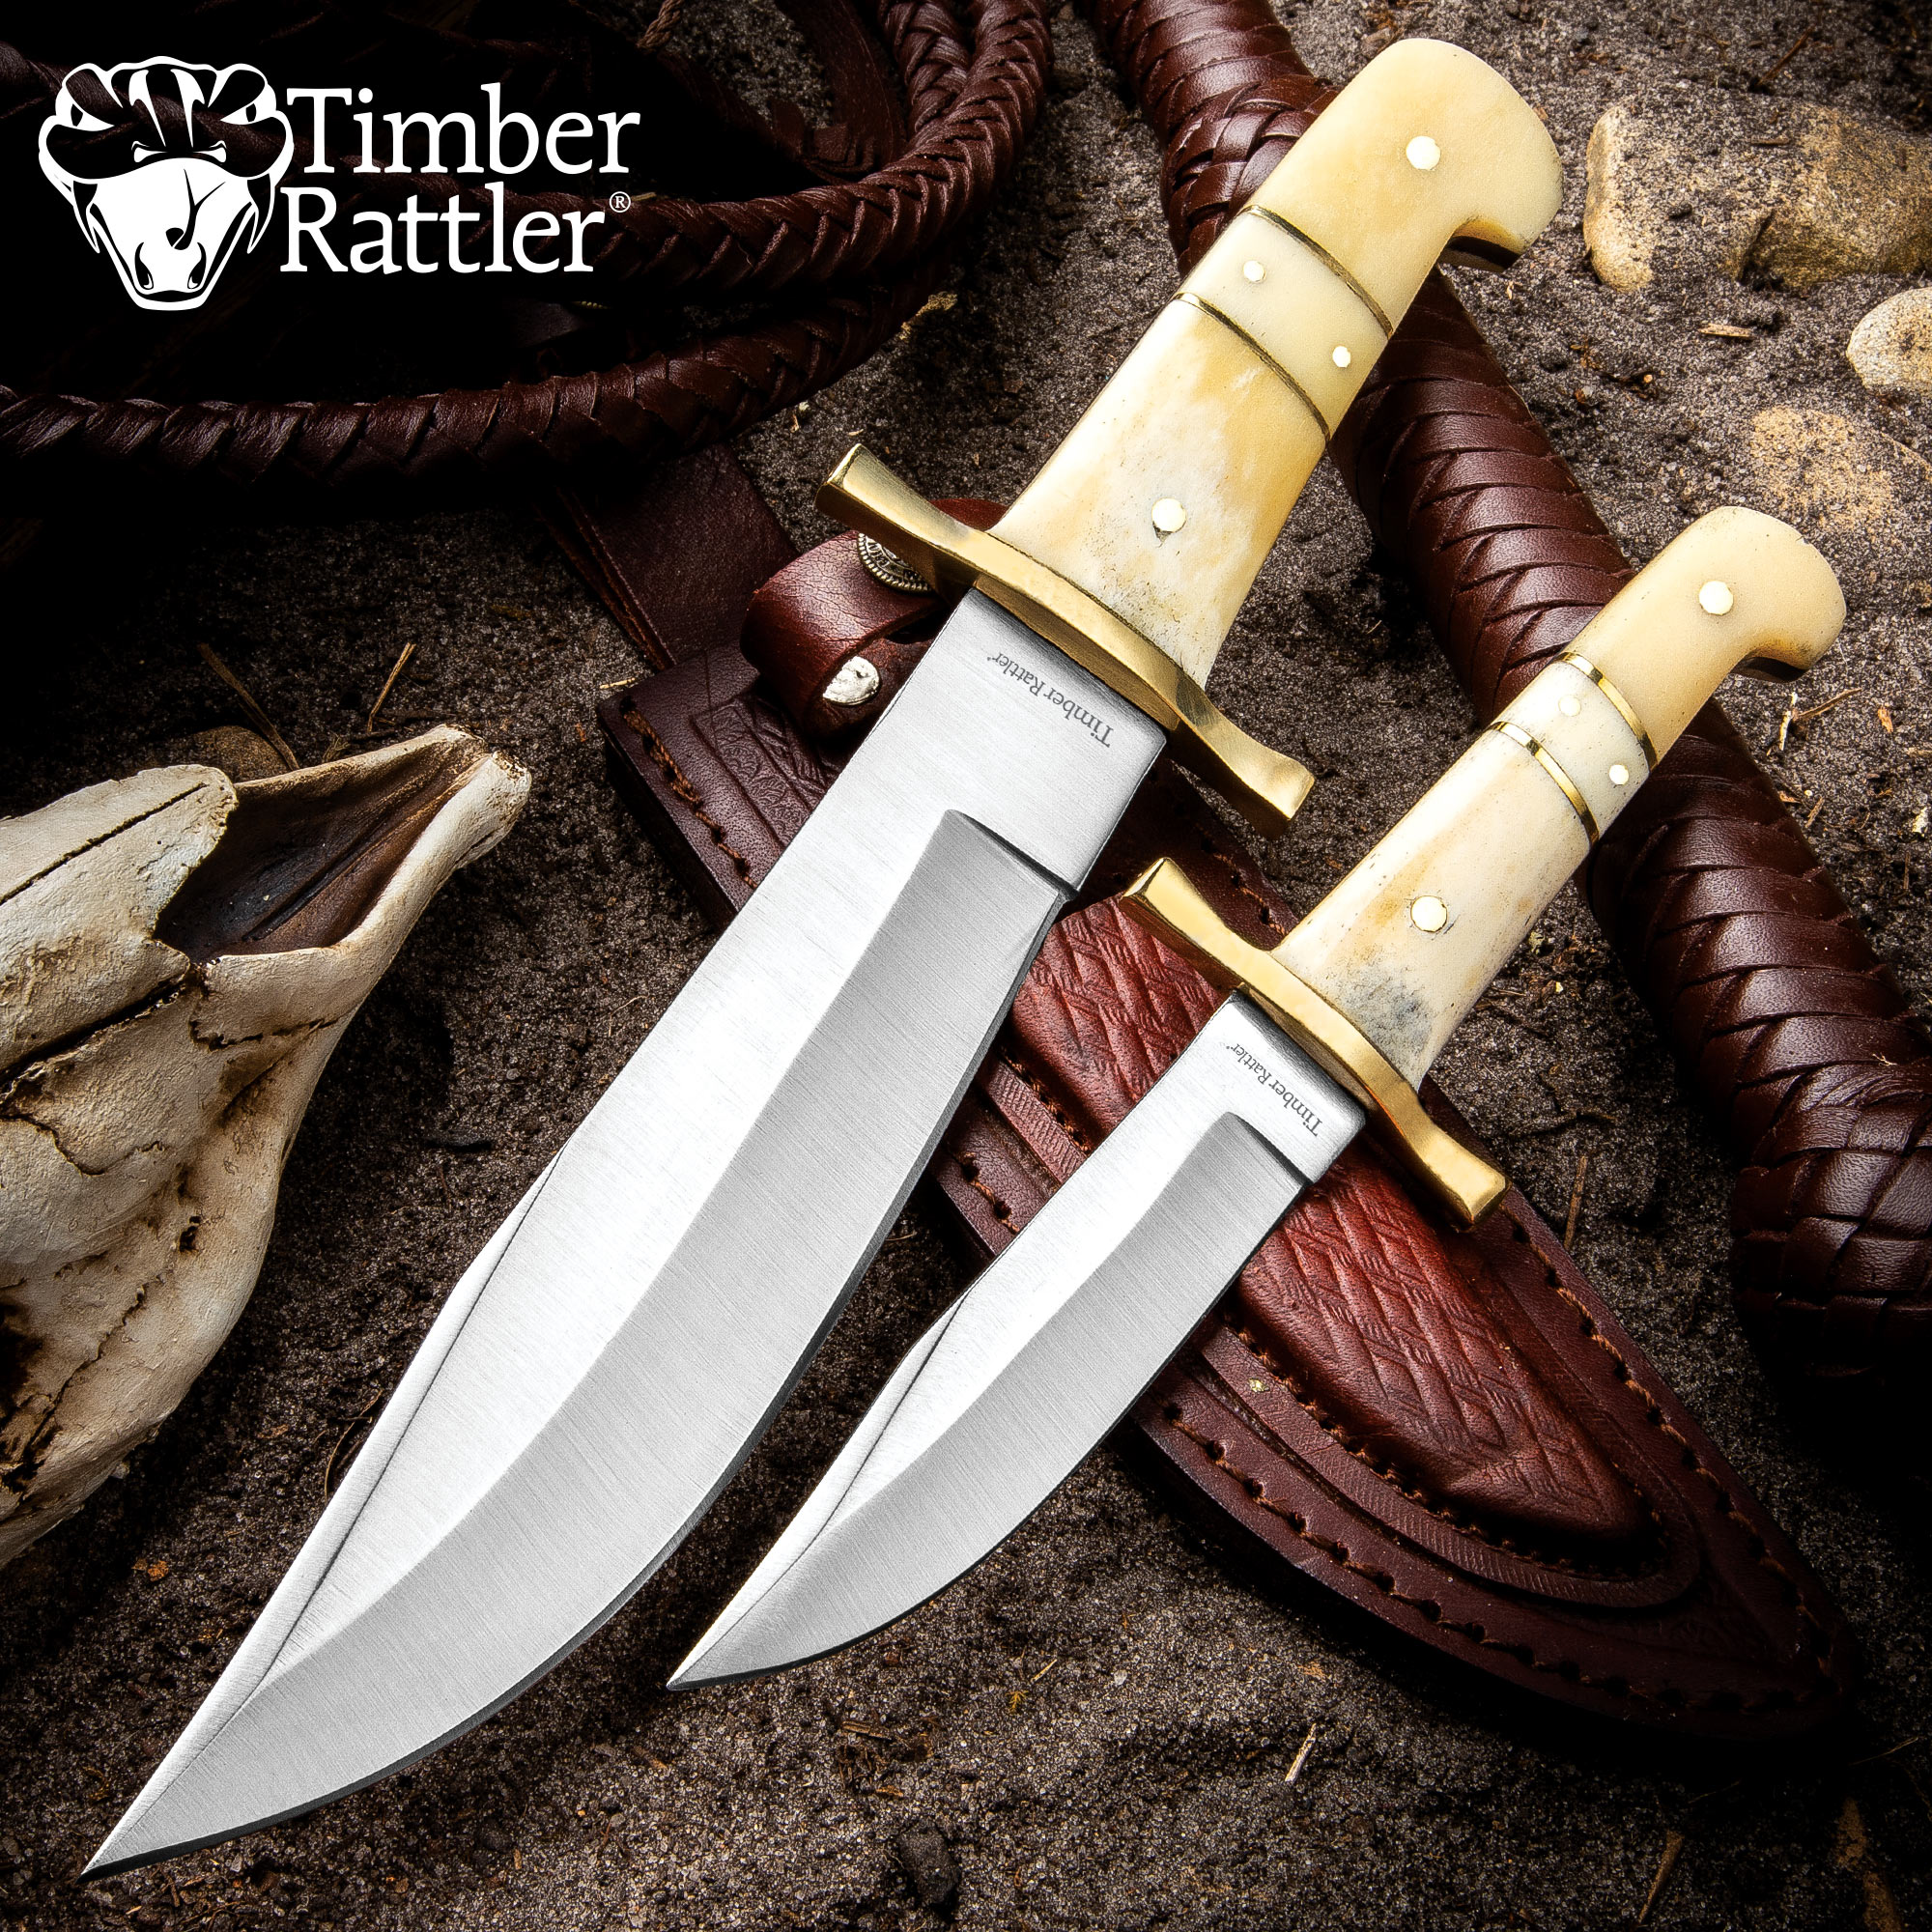 timber rattler camel bone bowie knife 2 knife set with leather